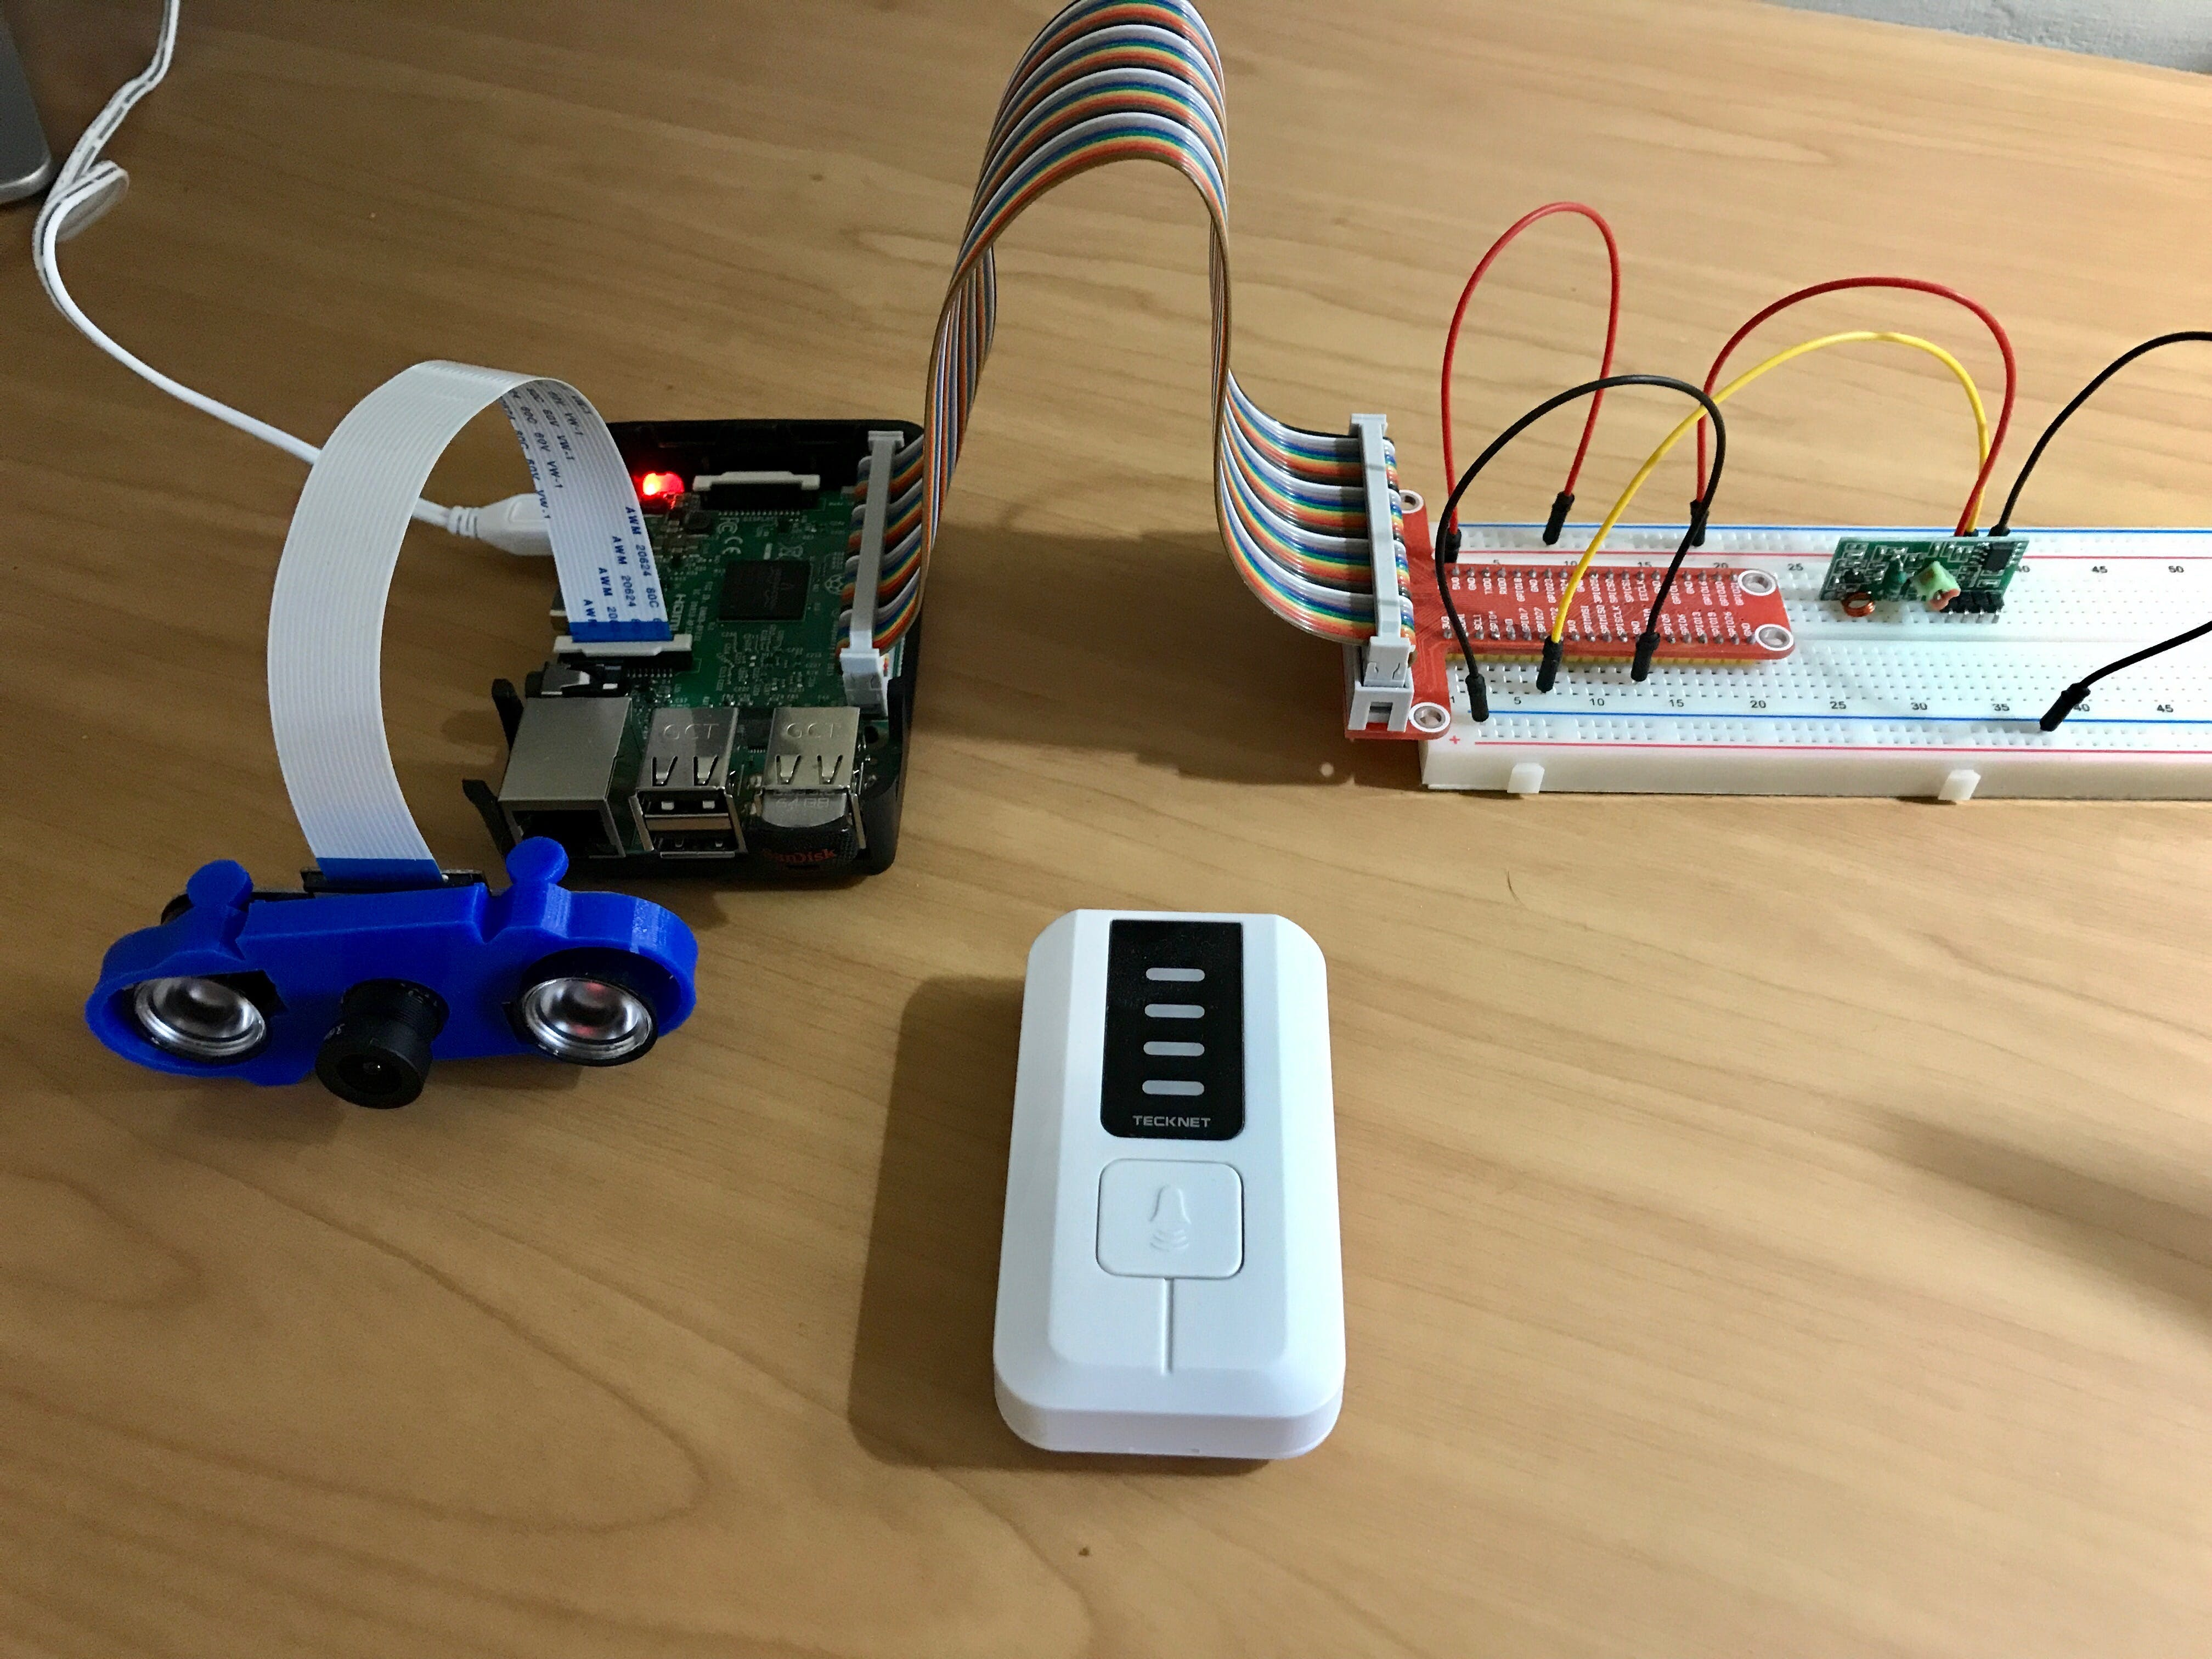 Figure 5. Setup for determining the RF pulse sequence transmitted by my doorbell. The RF receiver is mounted on the breadboard.